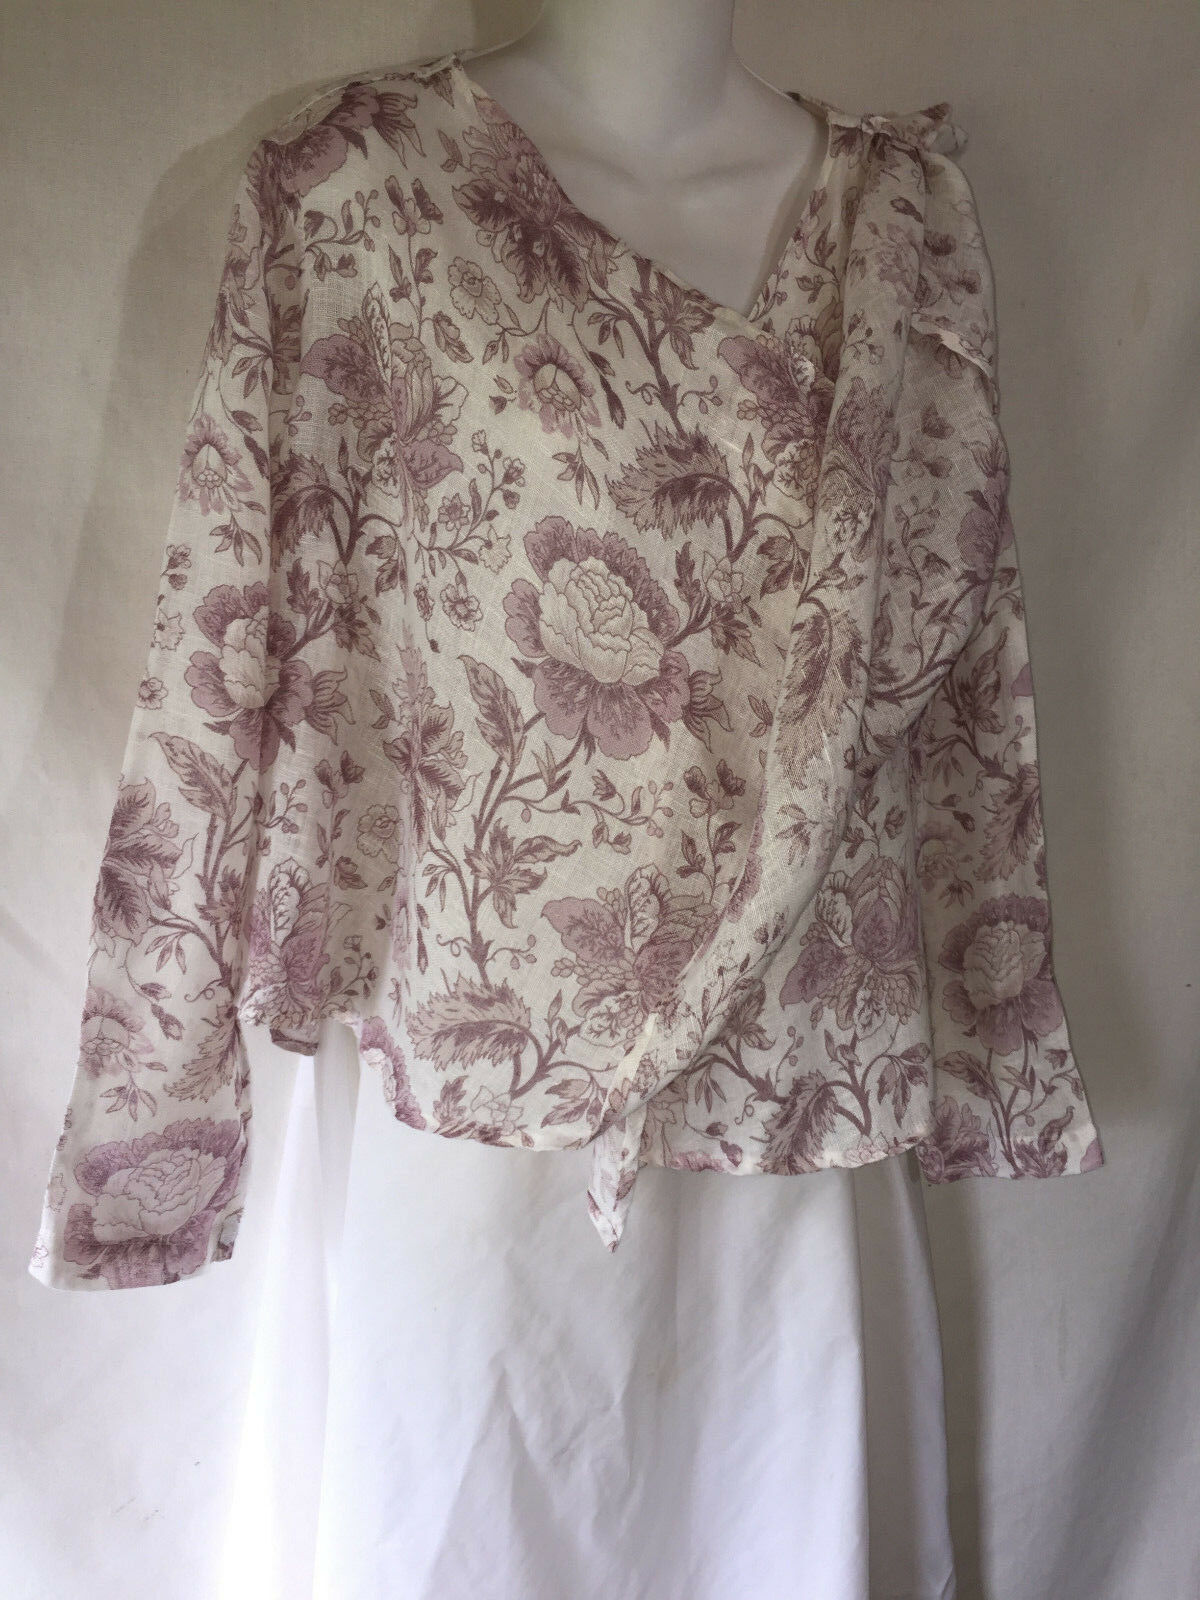 FLAX Airy Linen Wrap Shirt Top Jacket Cardigan Lagenlook Weiß lila Floral P